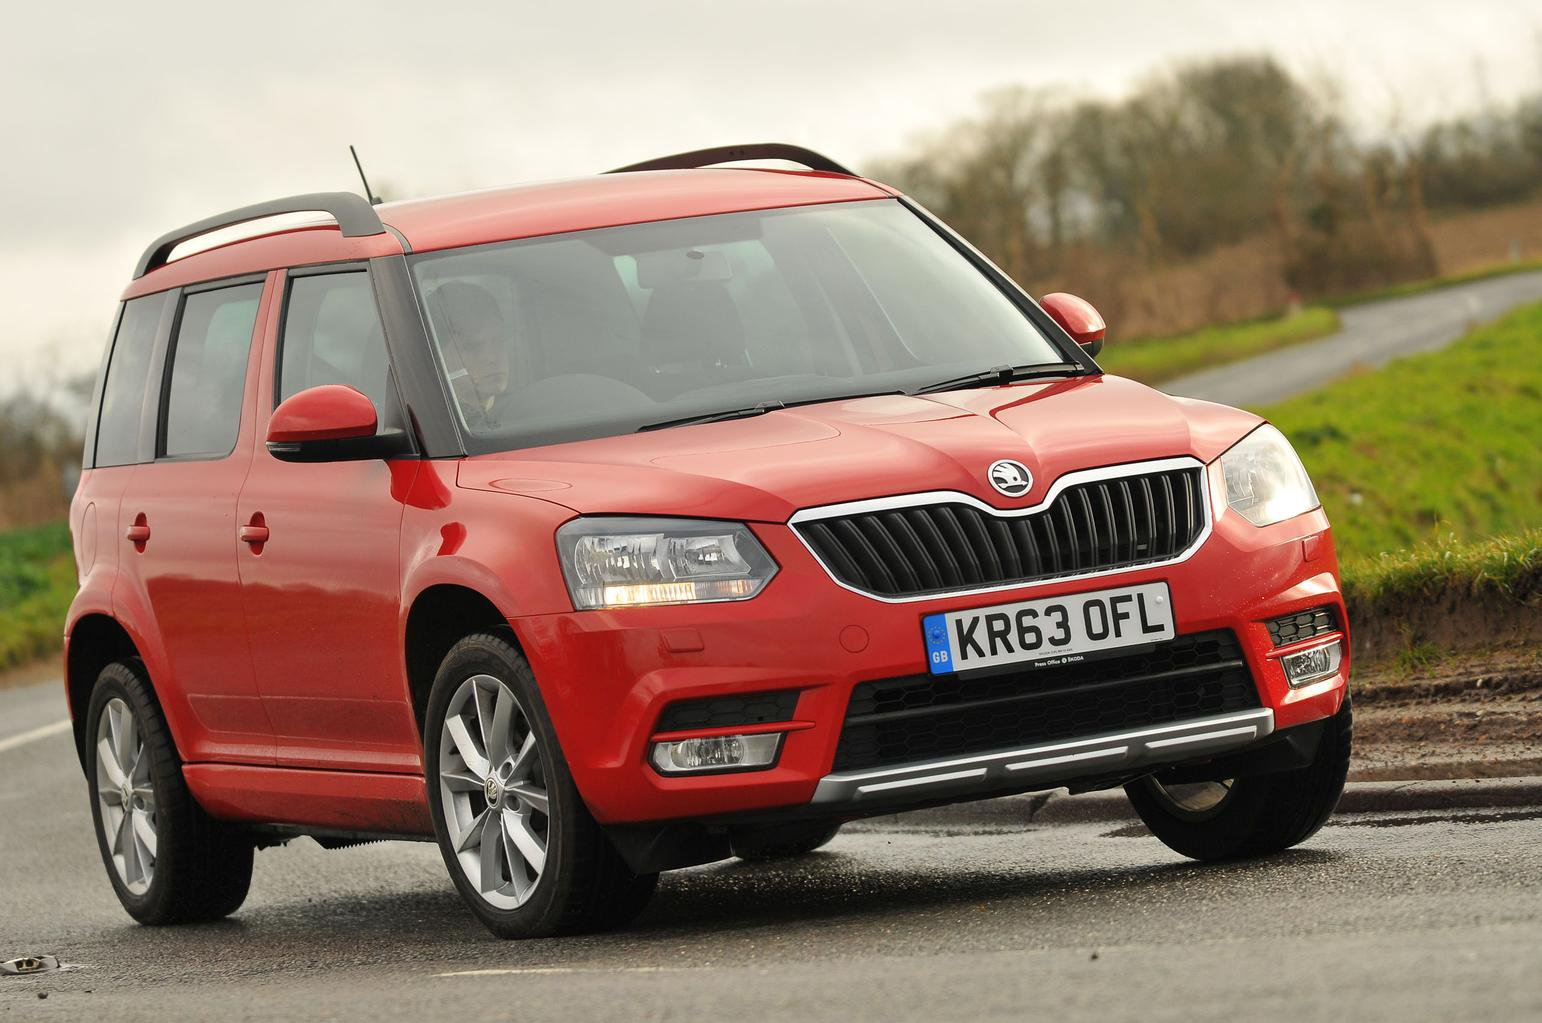 Skoda Yeti reviewed on video